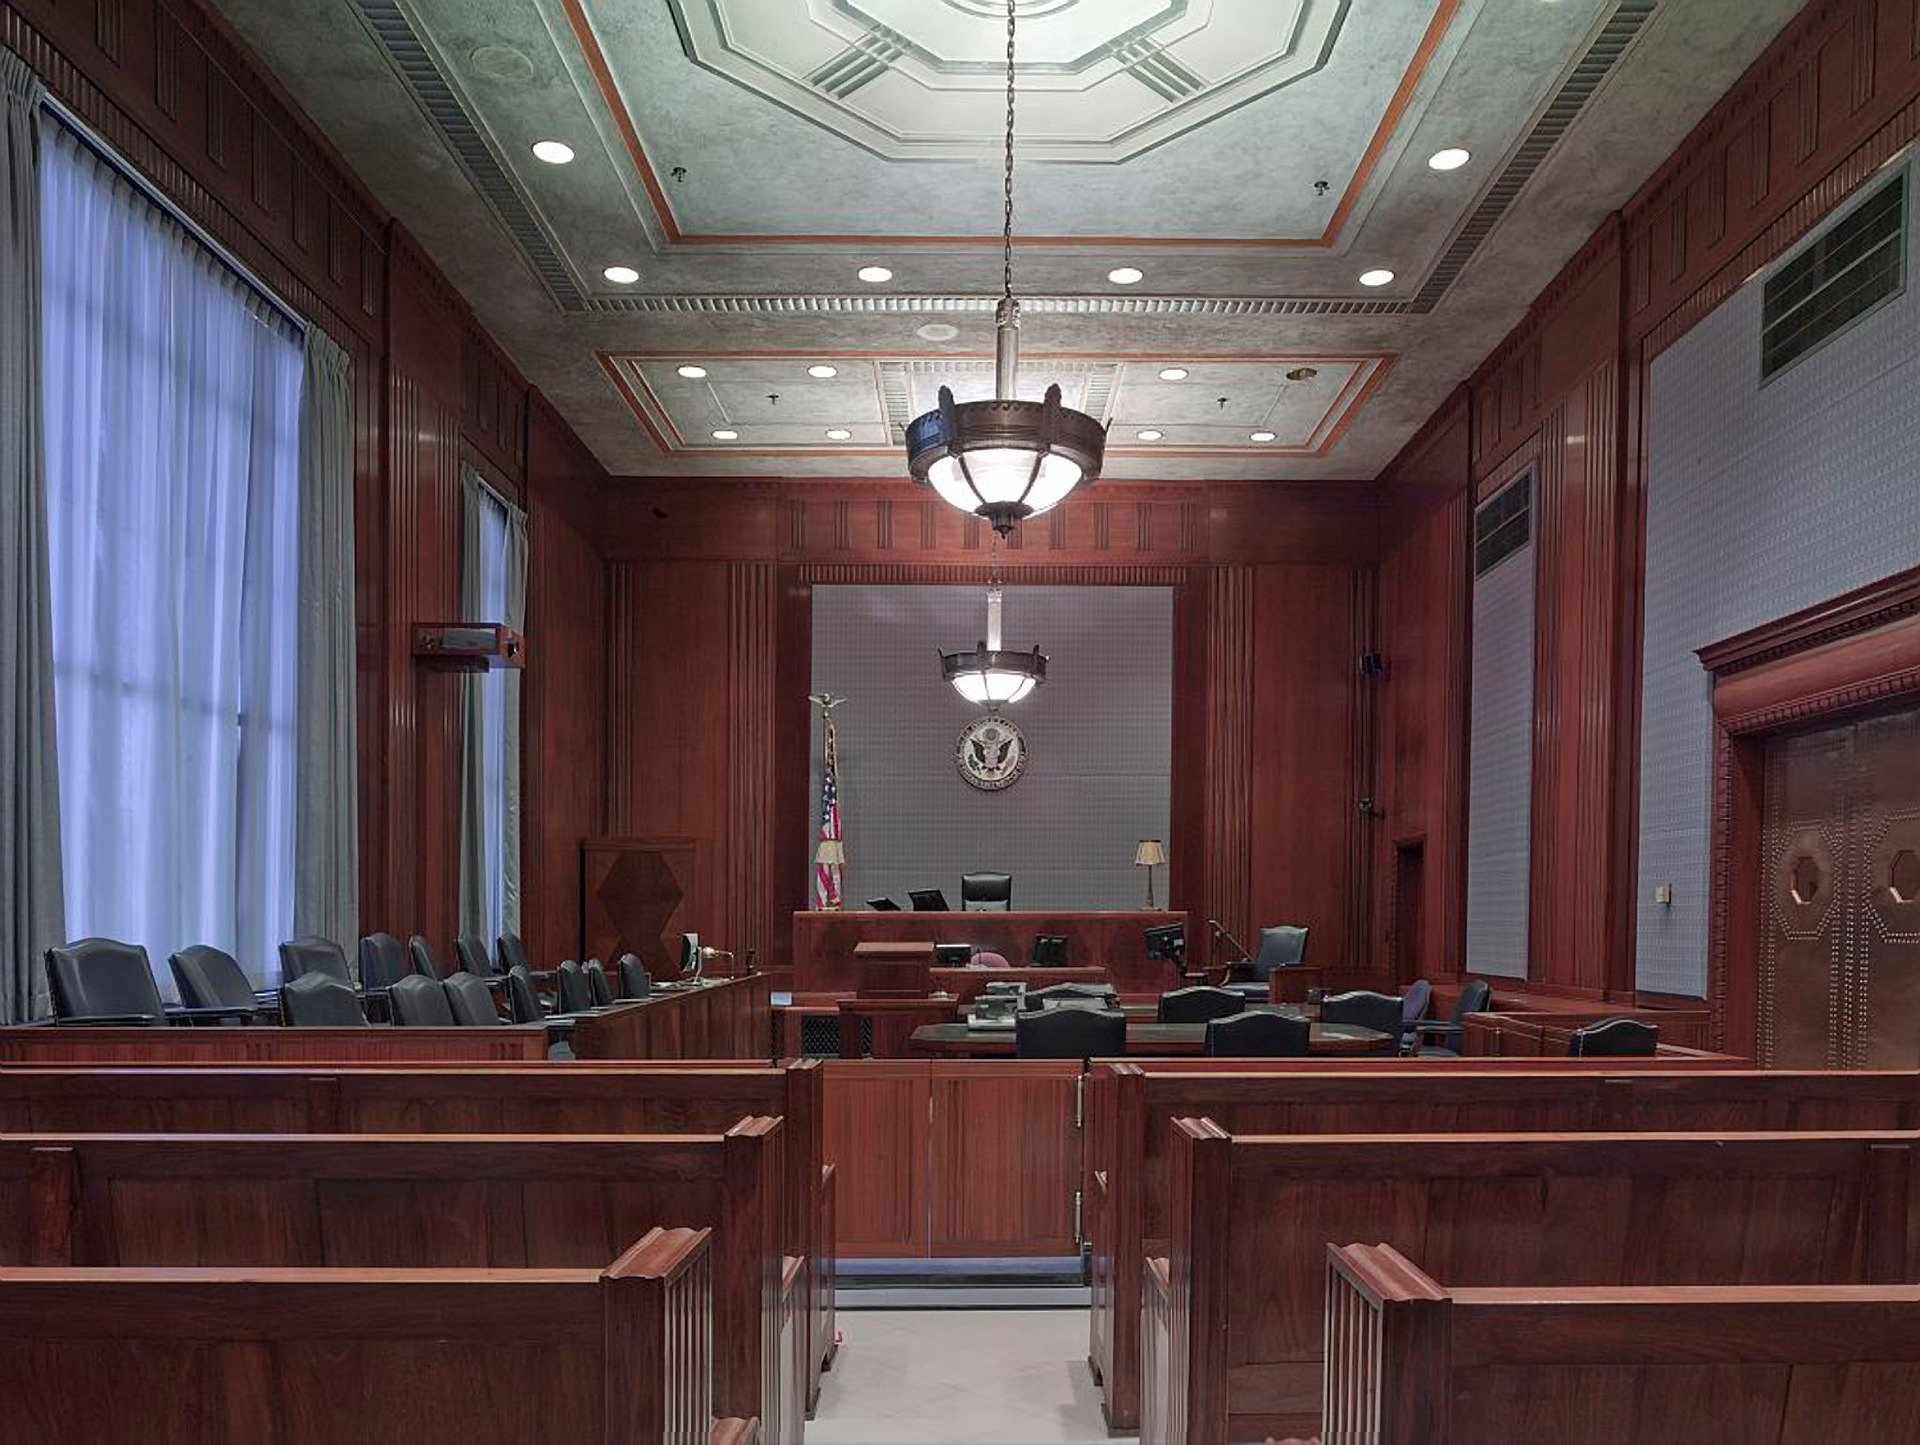 Courtroom Benches Seats   Source: Pixabay